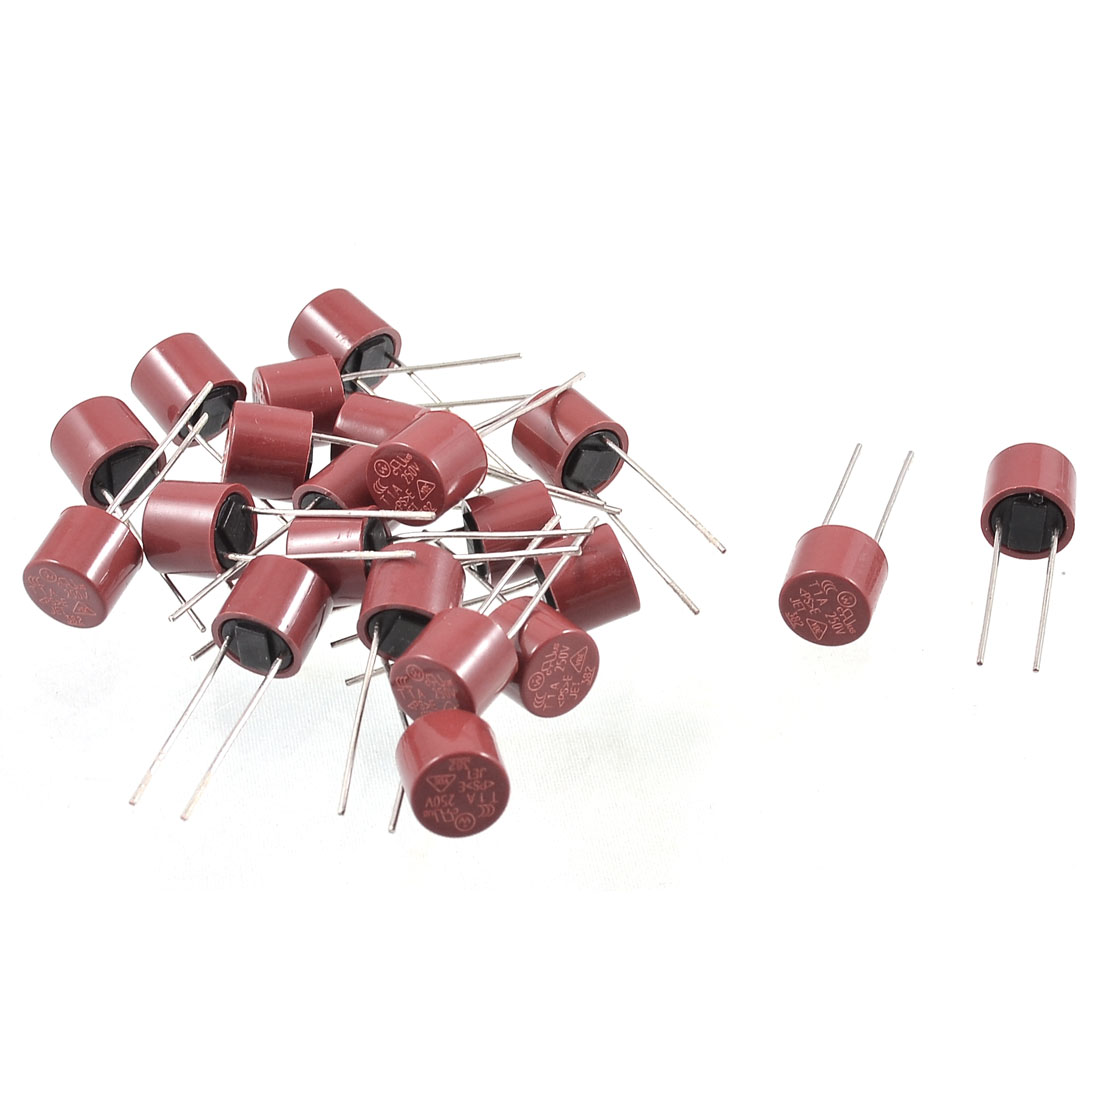 20 x Cylinder Shaped Radial Leads Micro Slow Blow Fuse T3.15A 3.15A 250V